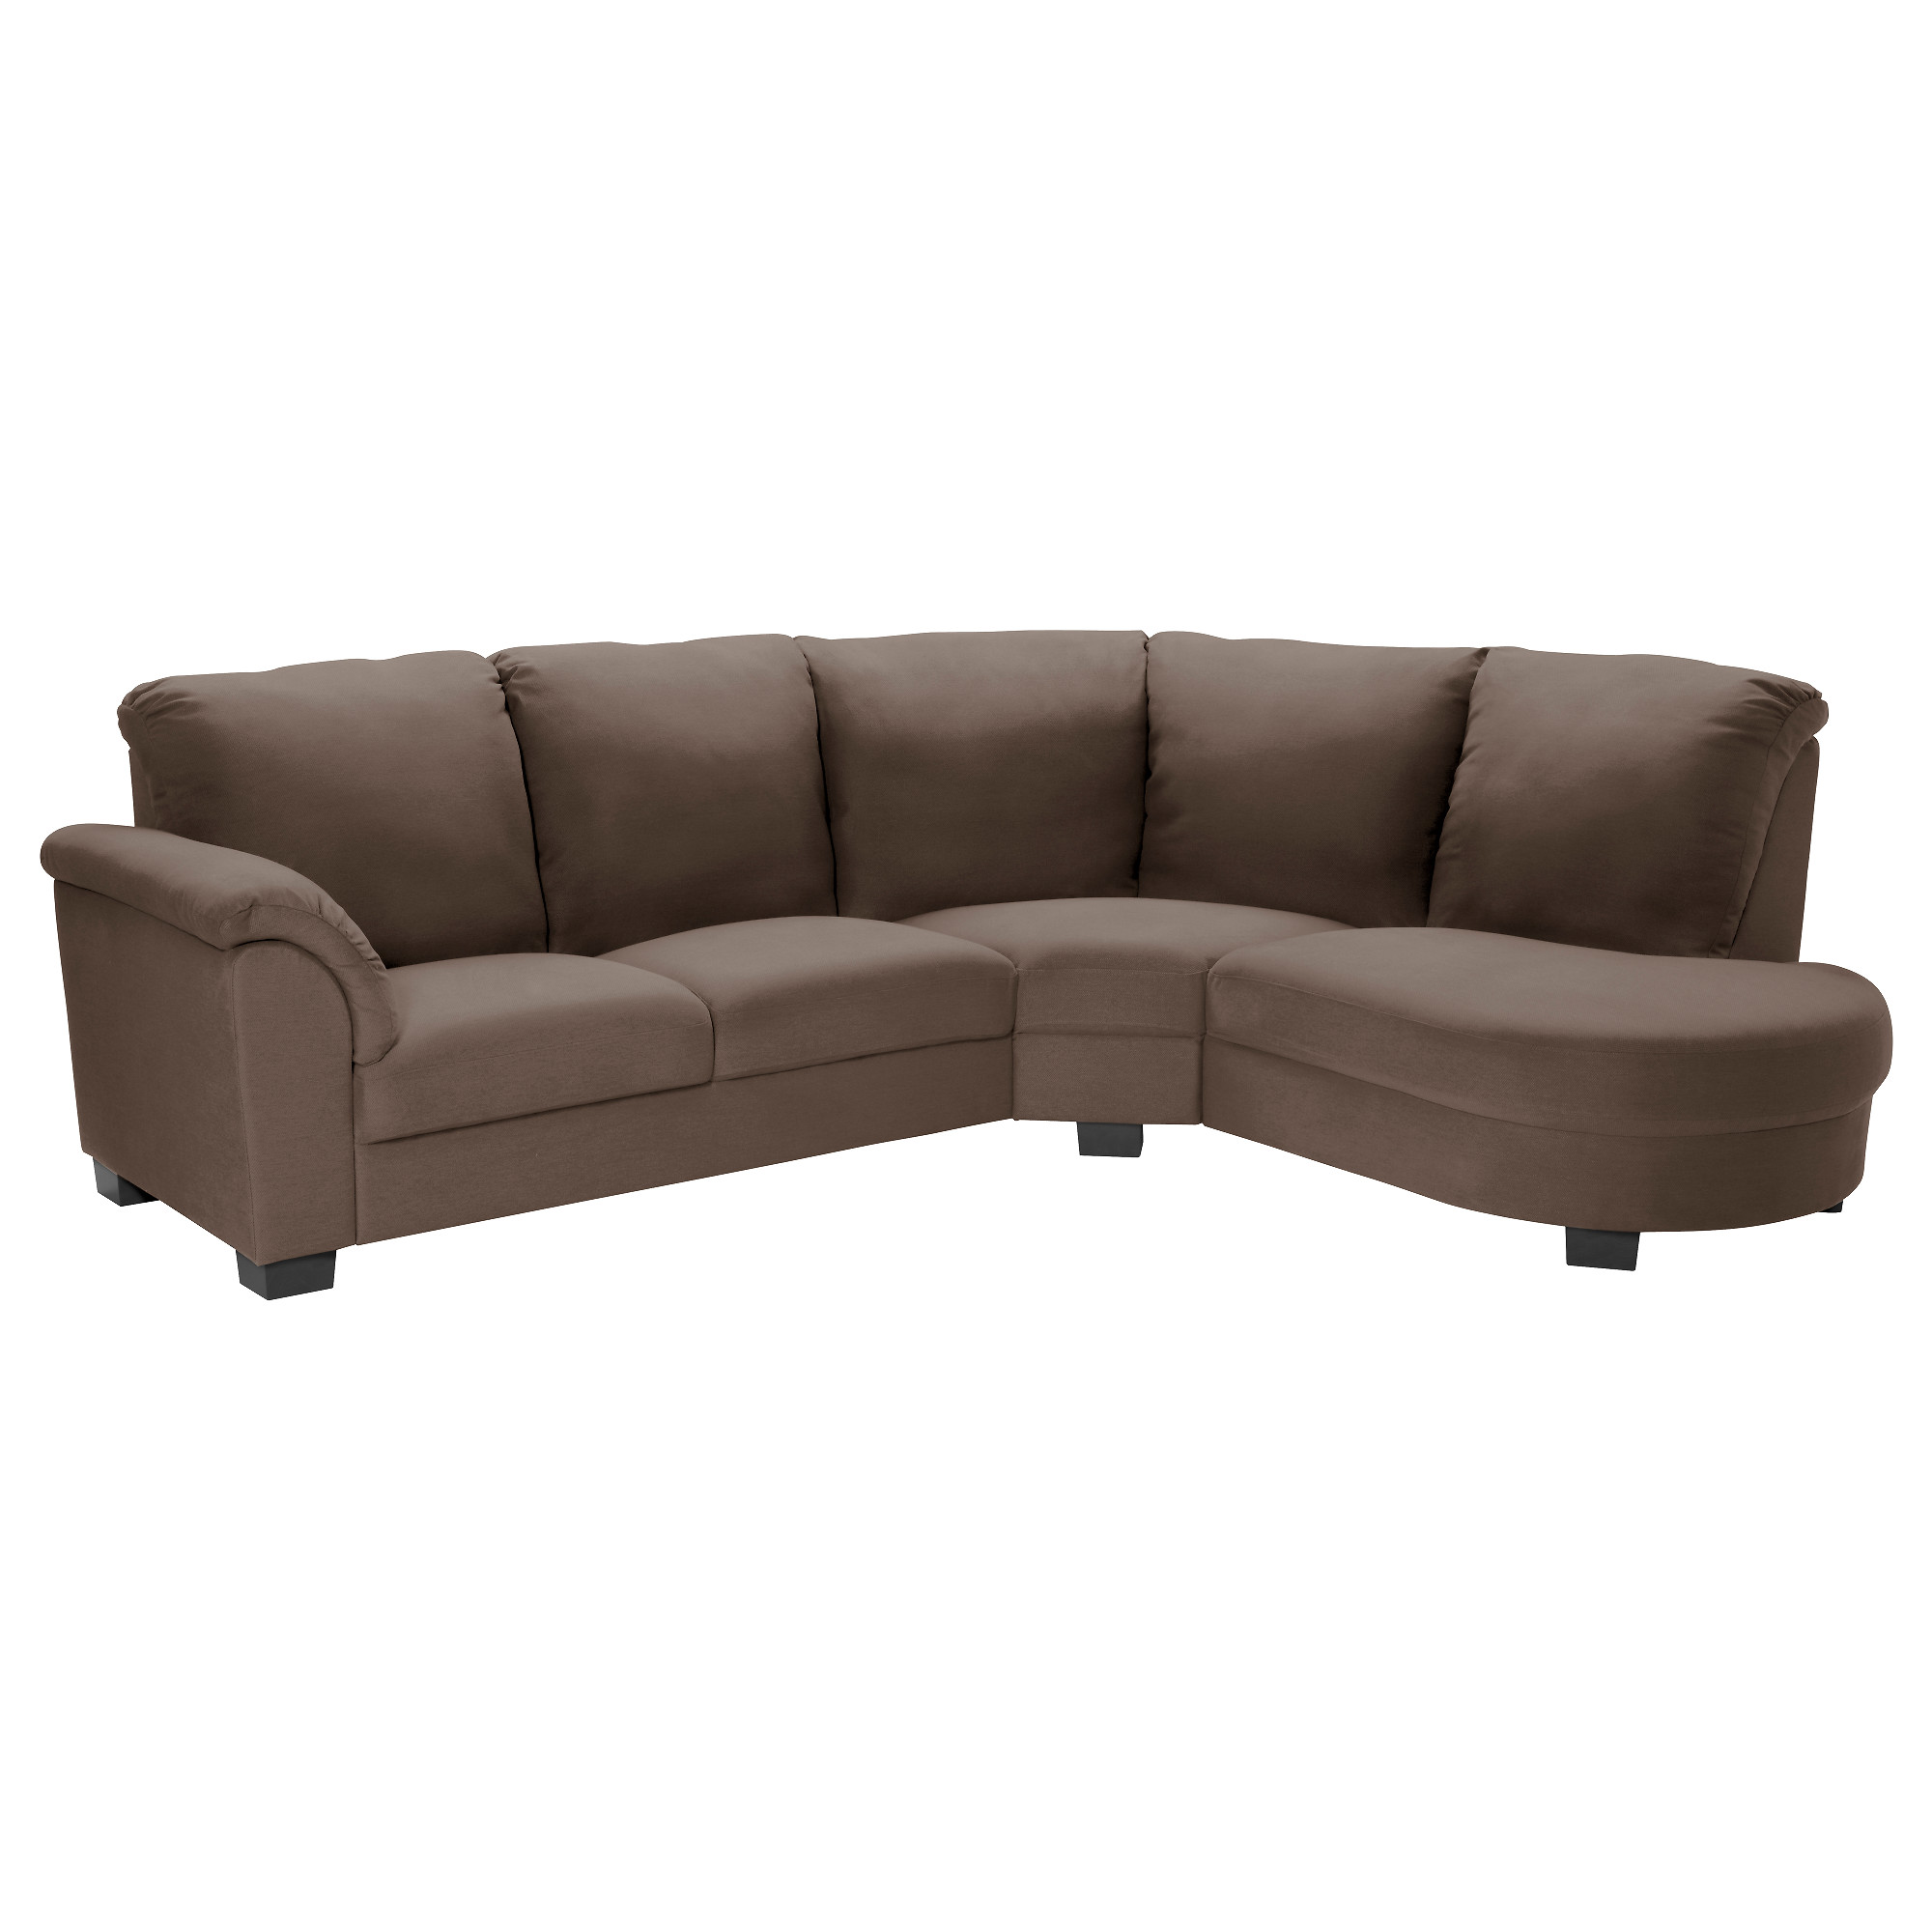 Sophisticated Sectional Couches for Sale for Home Furniture Ideas: Elegant Sectional Couches For Sale With Cushions And Wooden Legs For Home Furniture Ideas With Cheap Sectional Couches For Sale